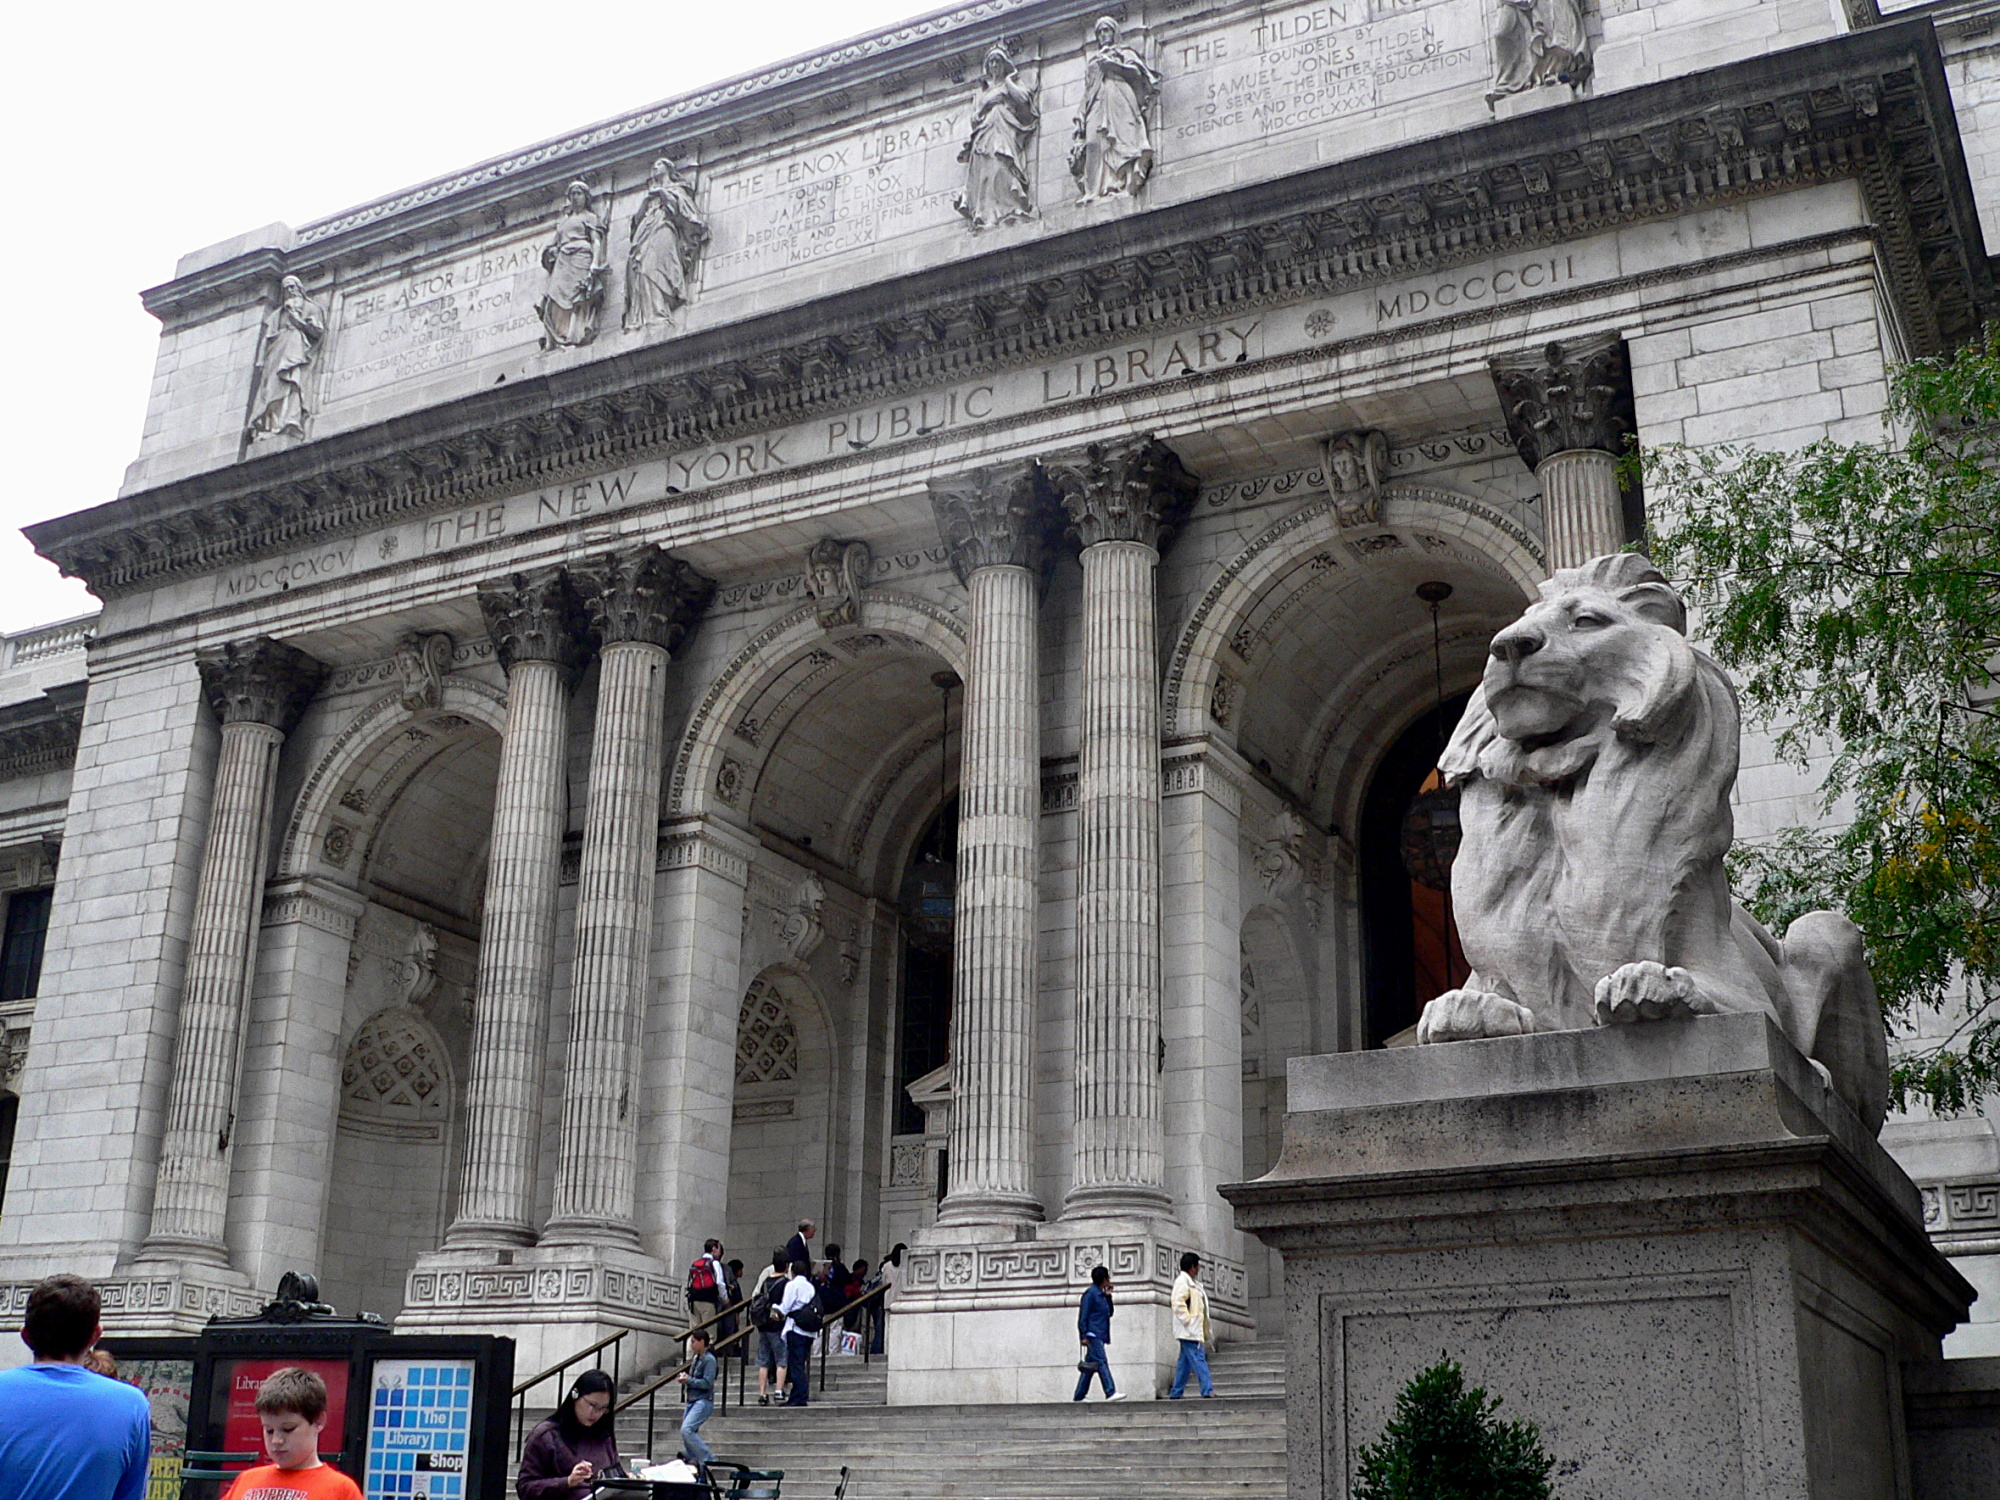 The New York Public Library is bringing you books via bookmobile